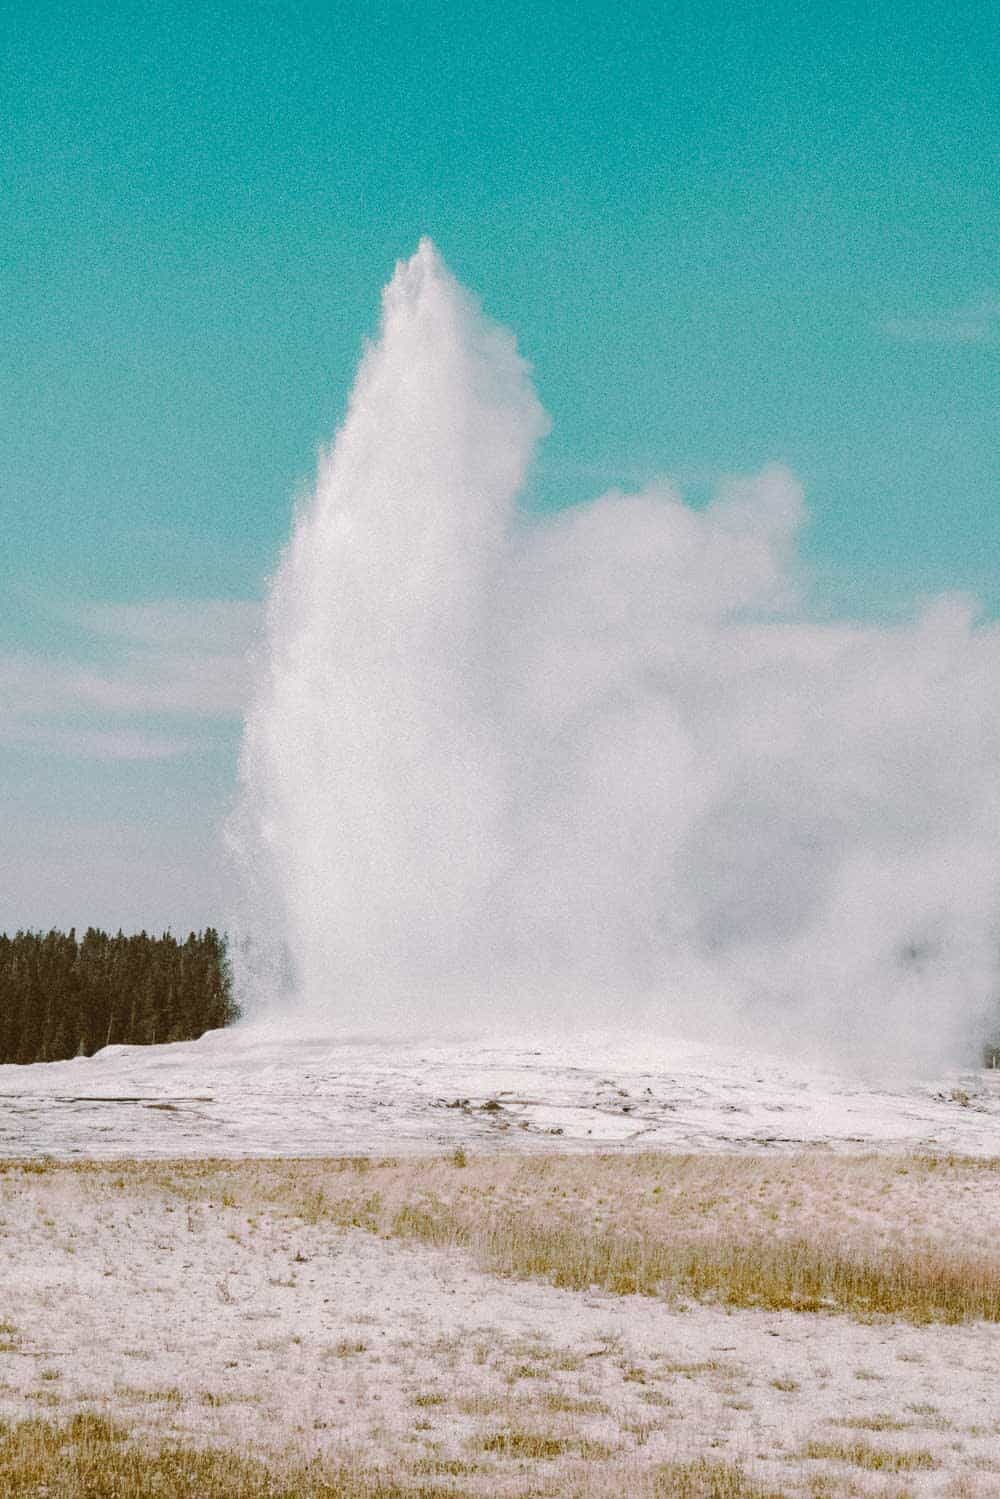 Best geysers in Yellowstone - Old Faithful